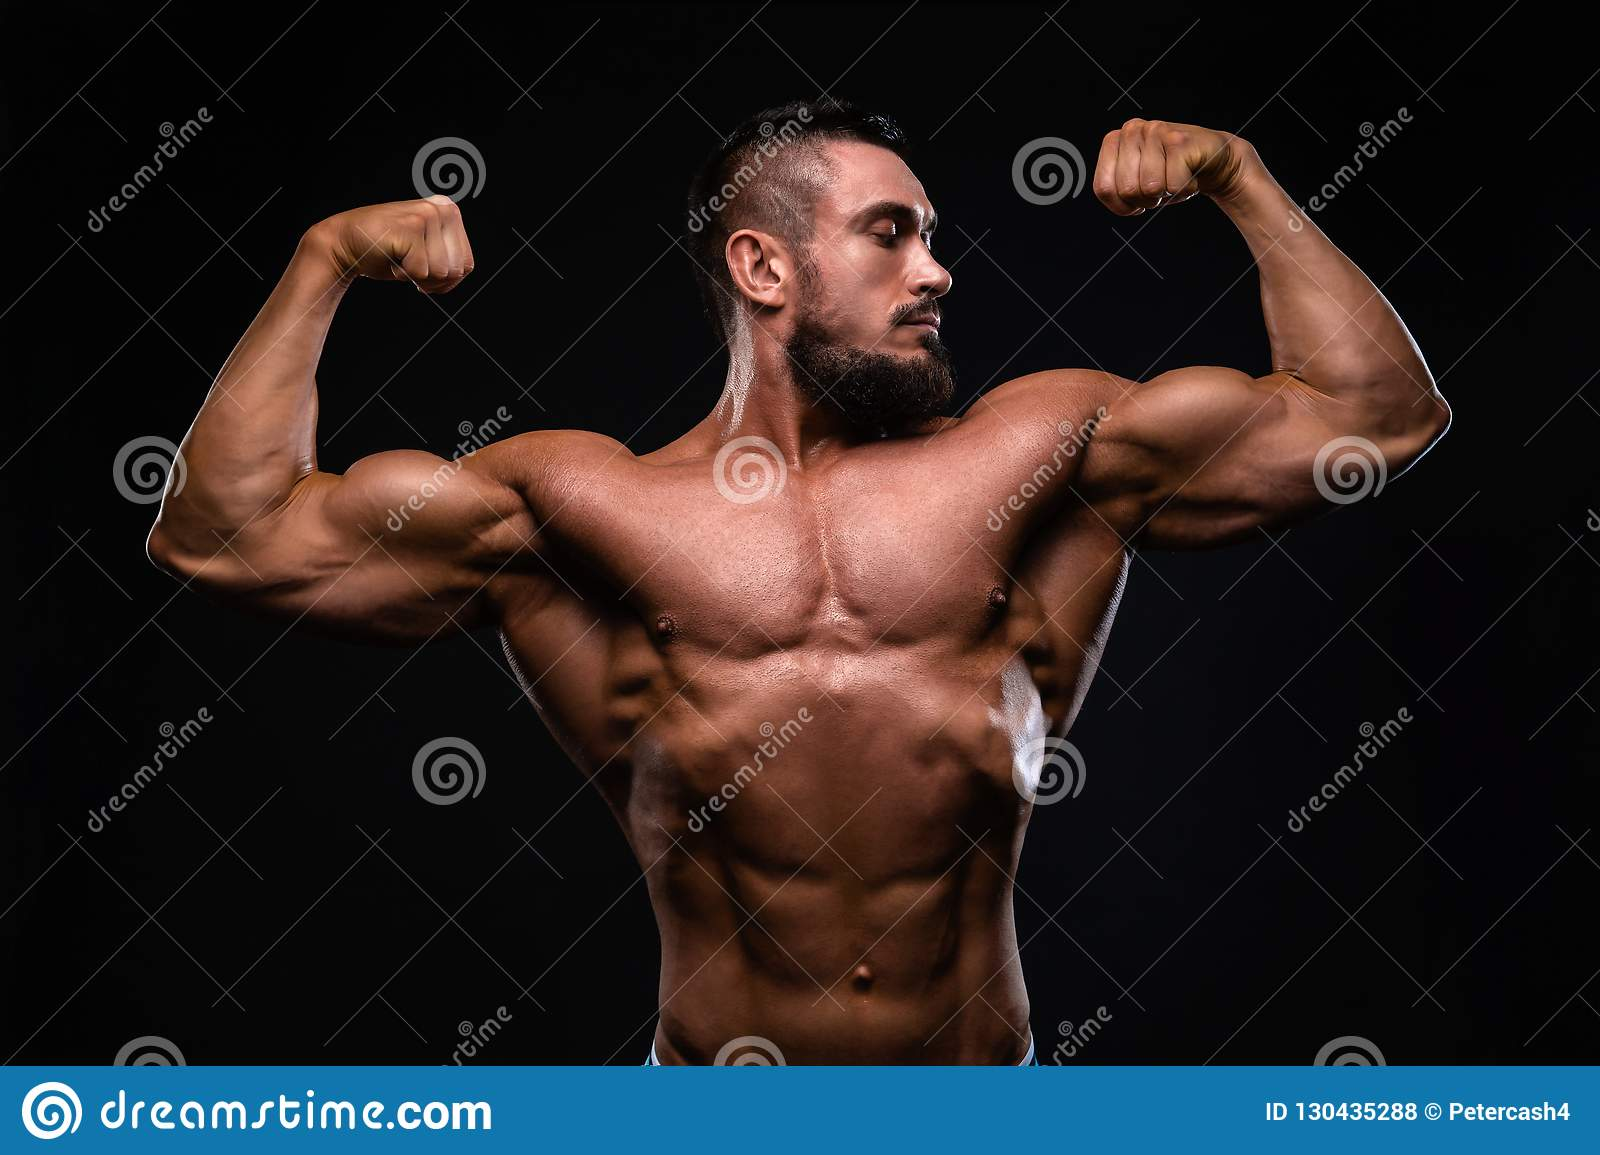 Muscular fitness burnet beard man is showing biceps on black background